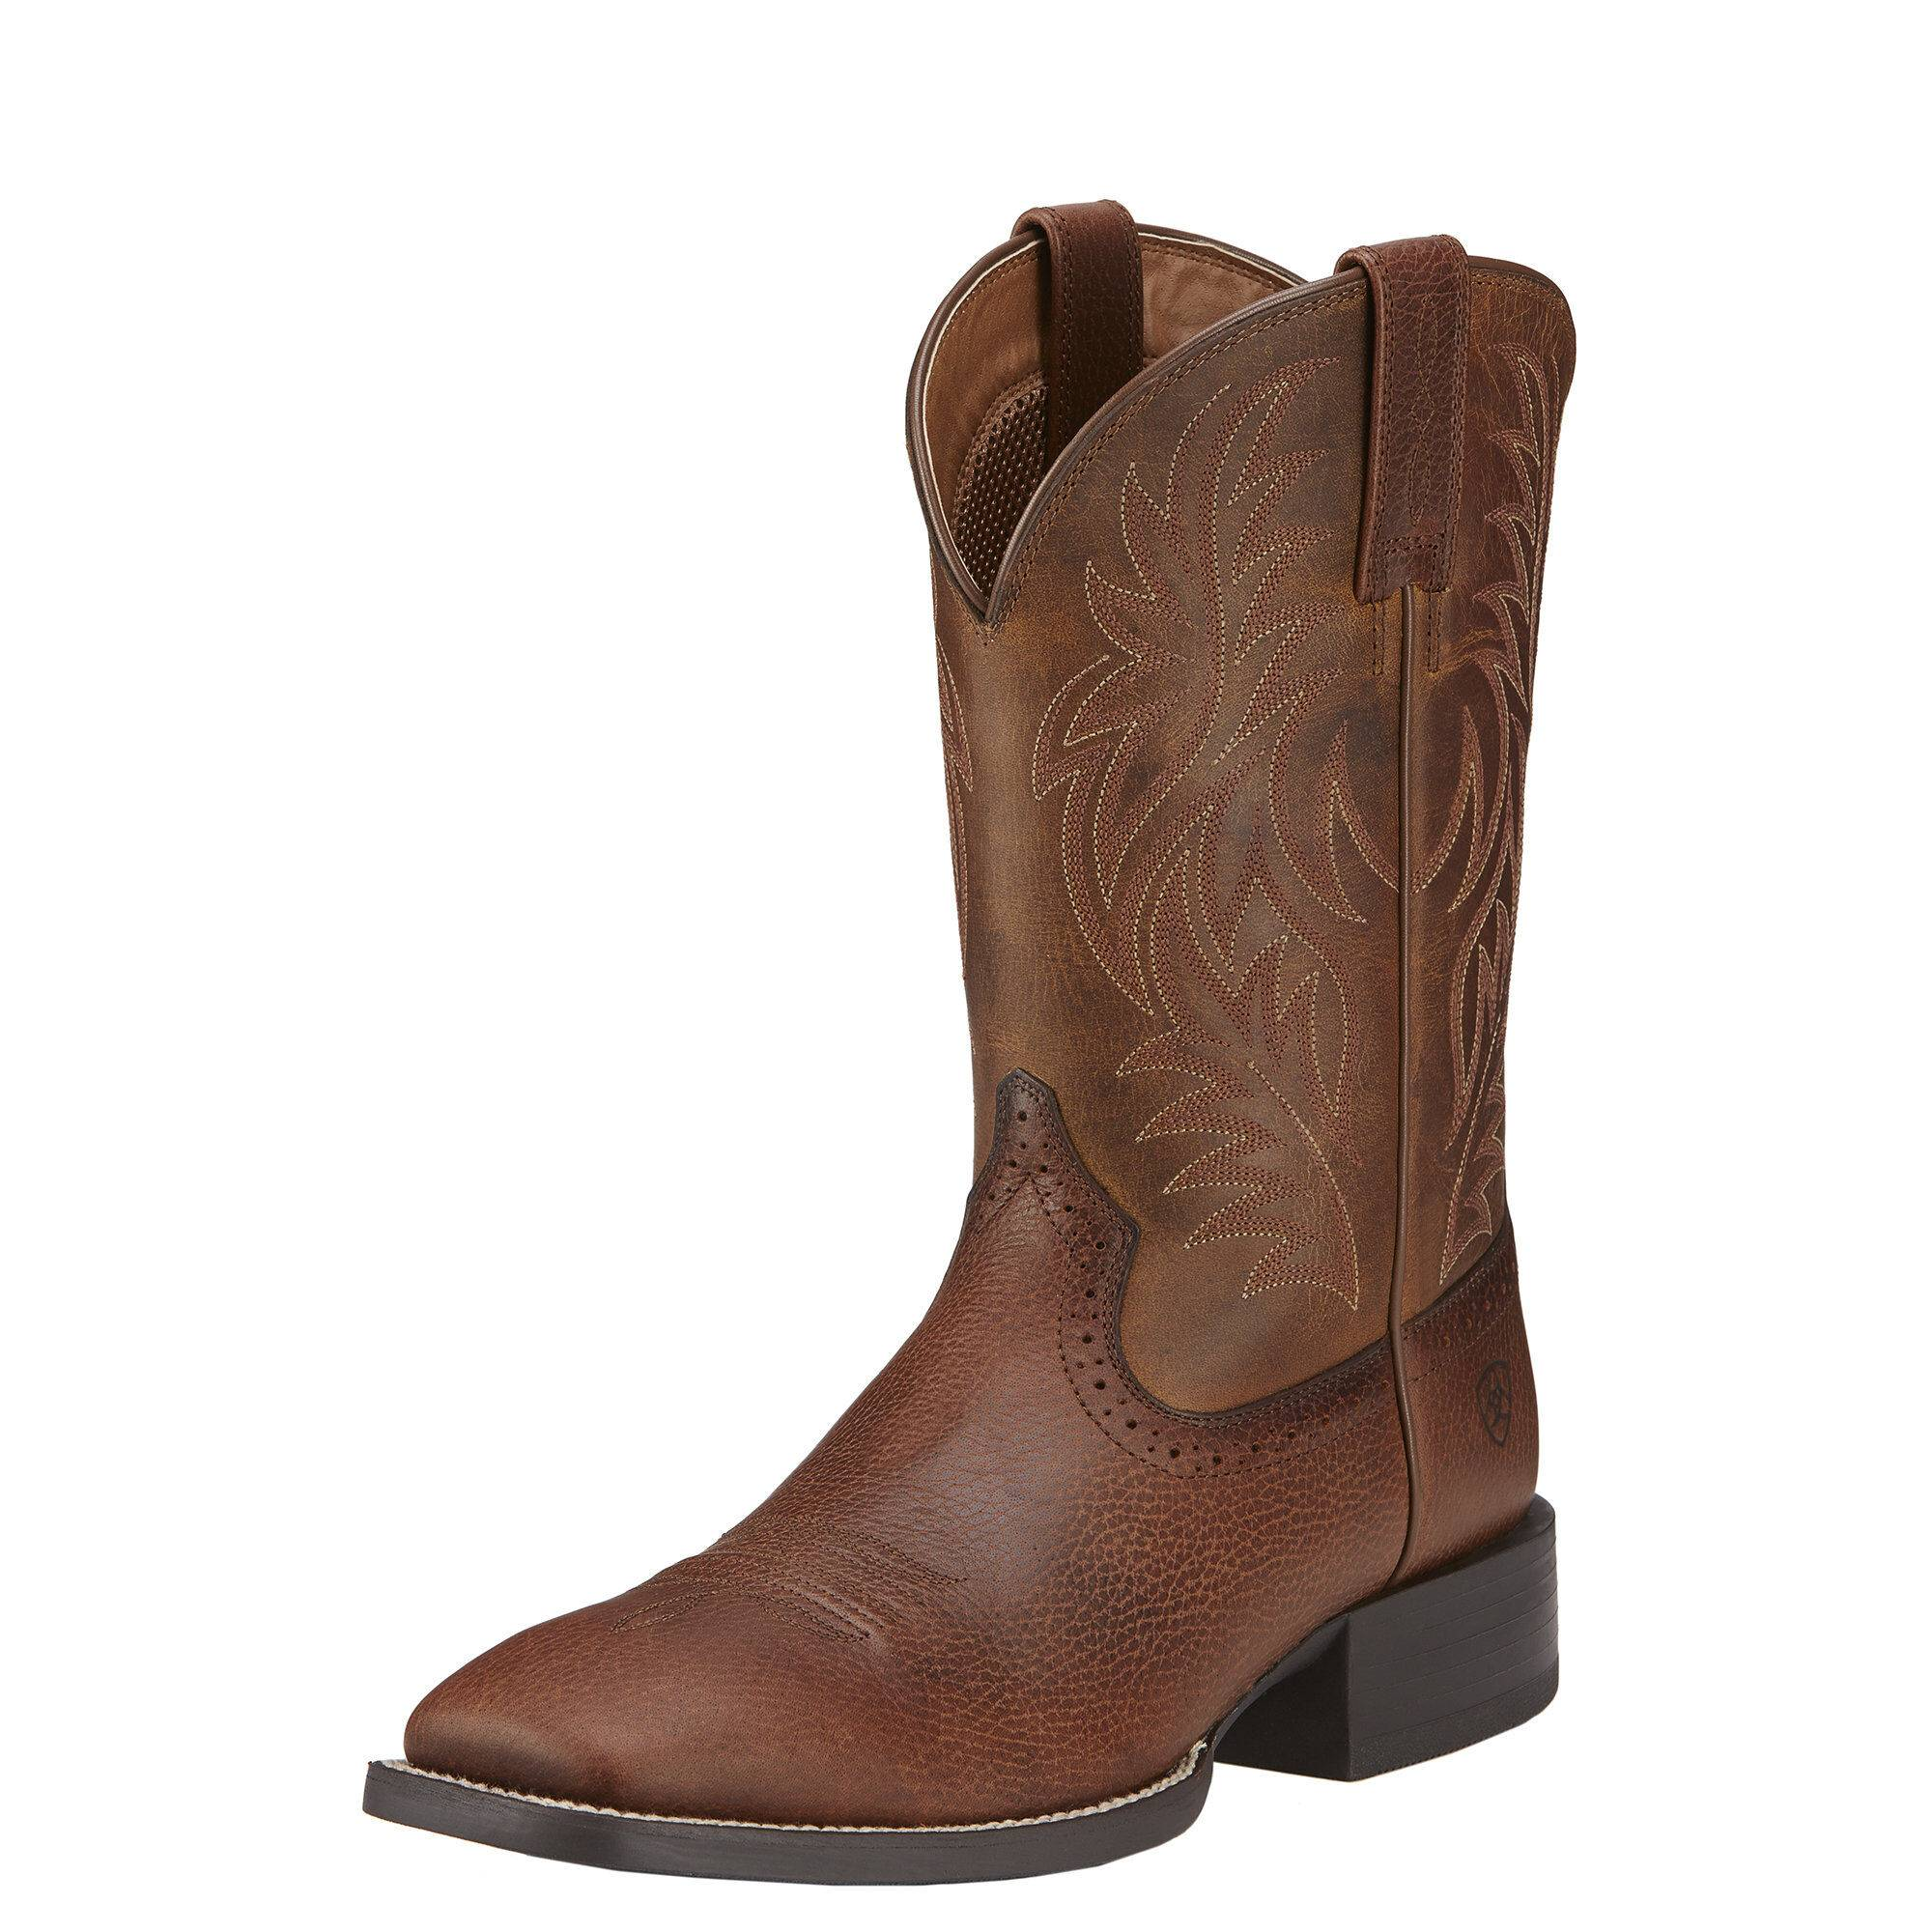 Ariat Men's Sport Wide Square Toe Western Boots in Fiddle Brown Leather, Size 11.5 D / Medium by Ariat